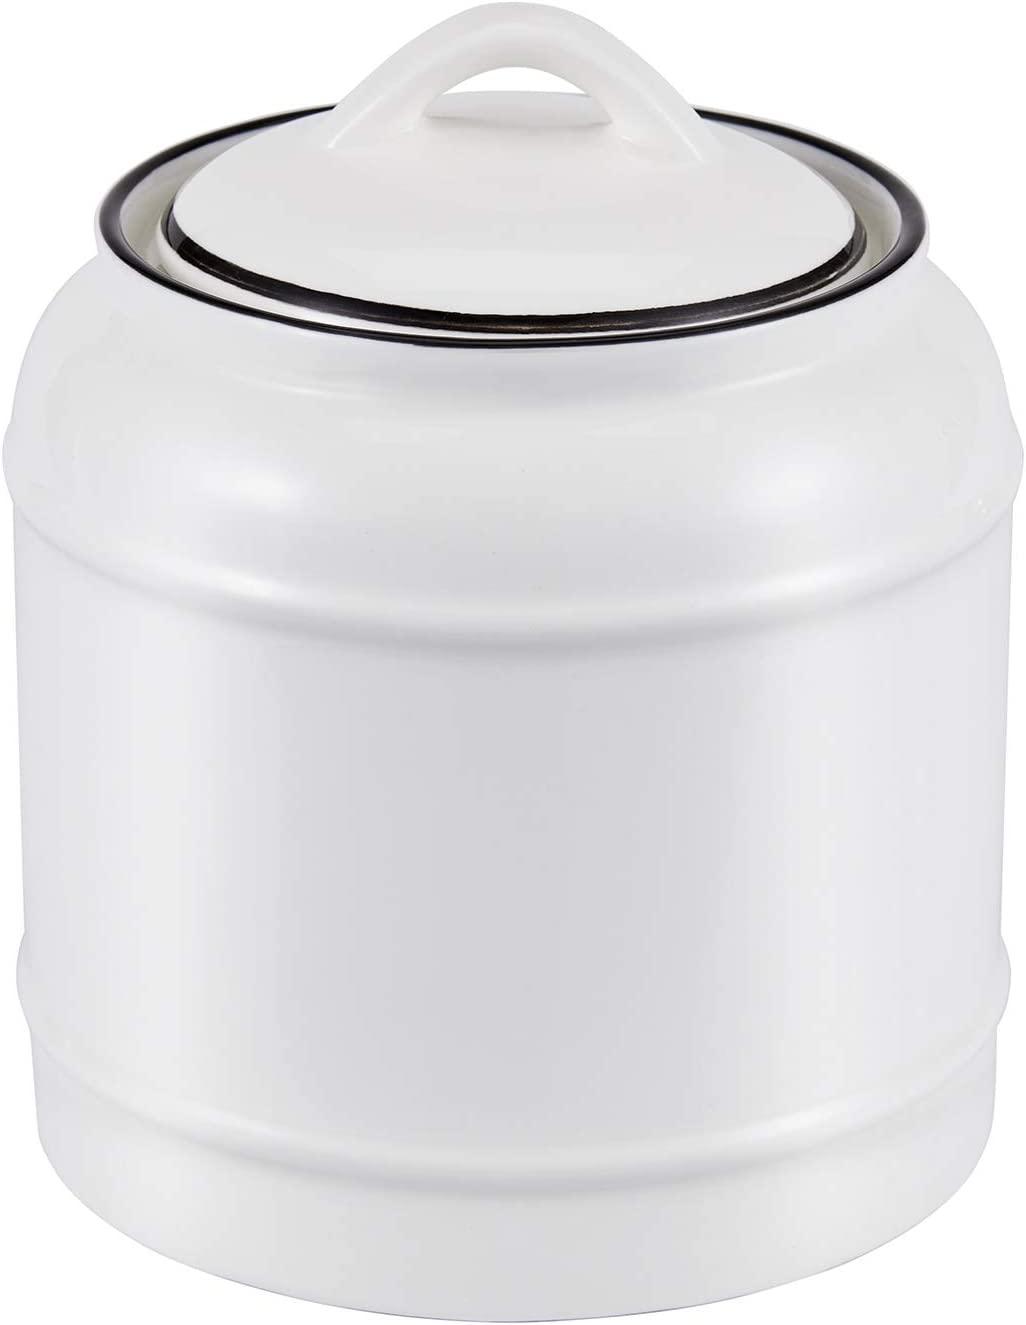 Toichi Airtight Ceramic Canisters 0.75 Liter(0.2 Gallon)|Coffee Canister|Fermentation Crock|Tea Canister|Kitchen Canisters|Food Jar for Pantry|Ceramic Food Storage Containers With Lids